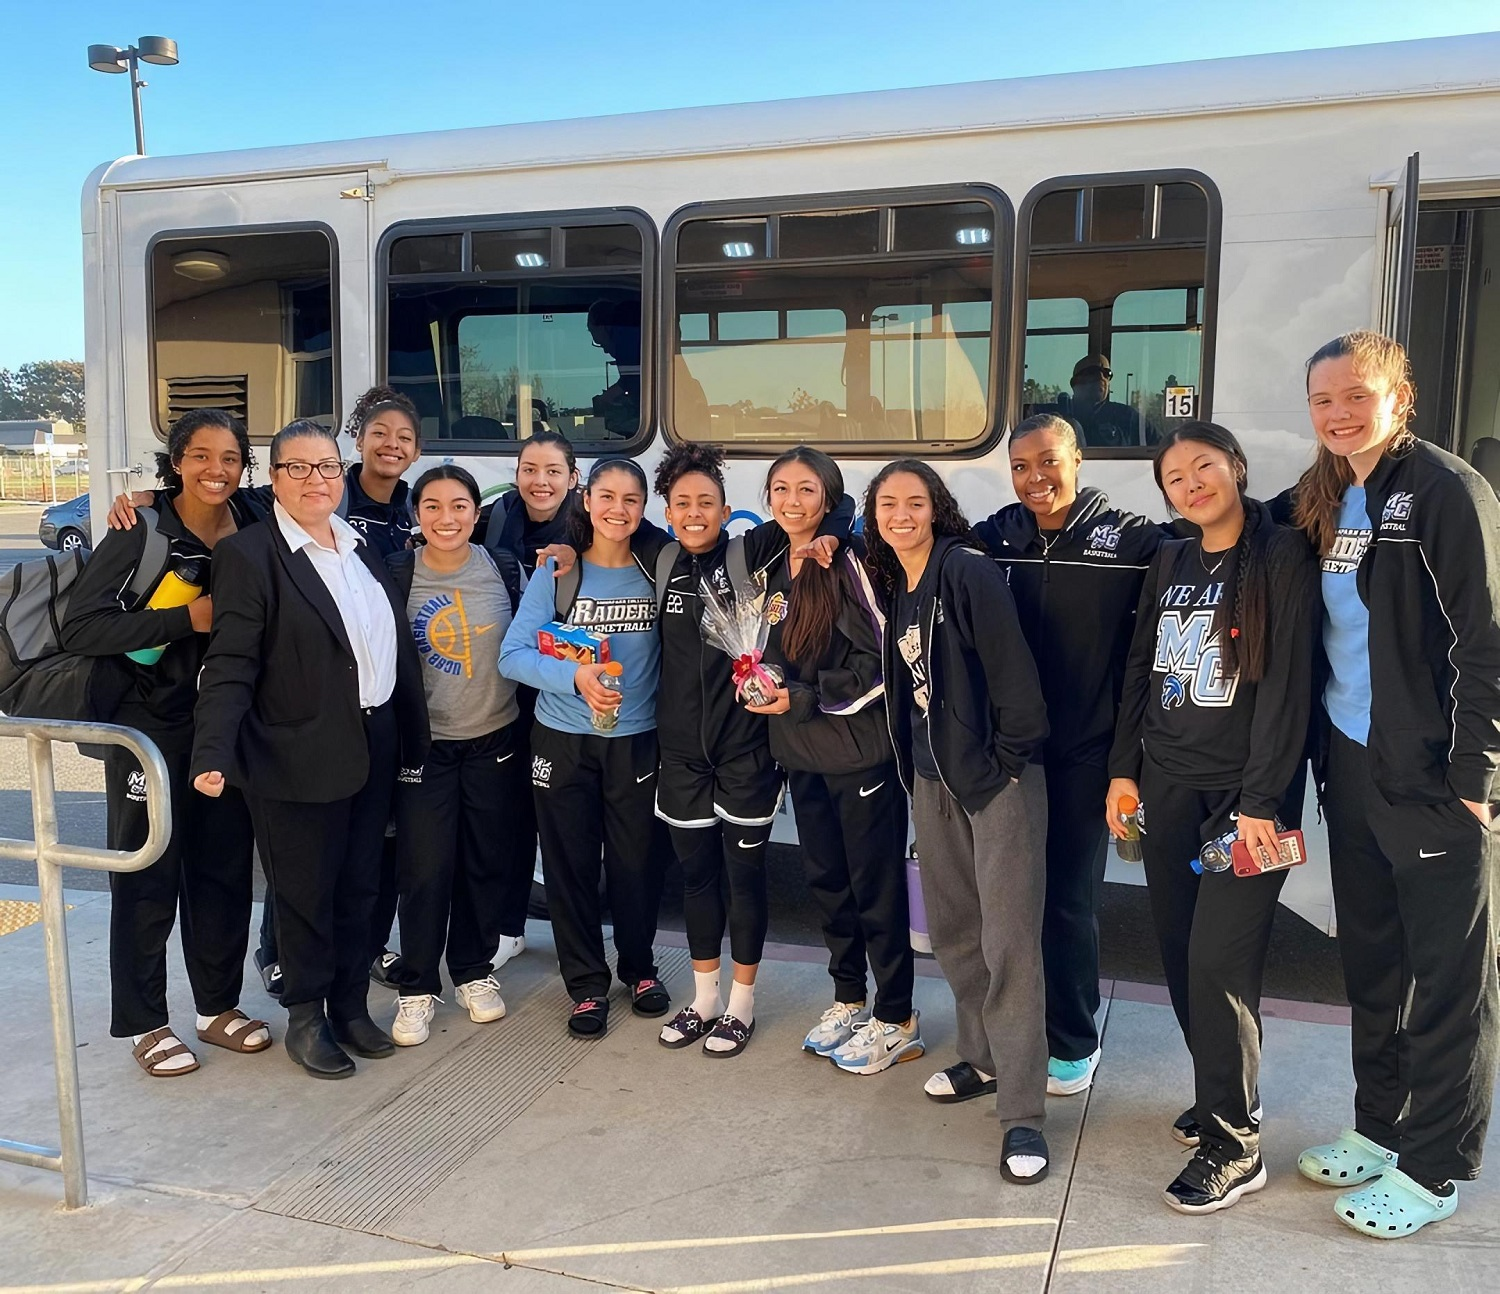 Image of highschool sports team being picked up by a Pegasus Transit shuttle bus.